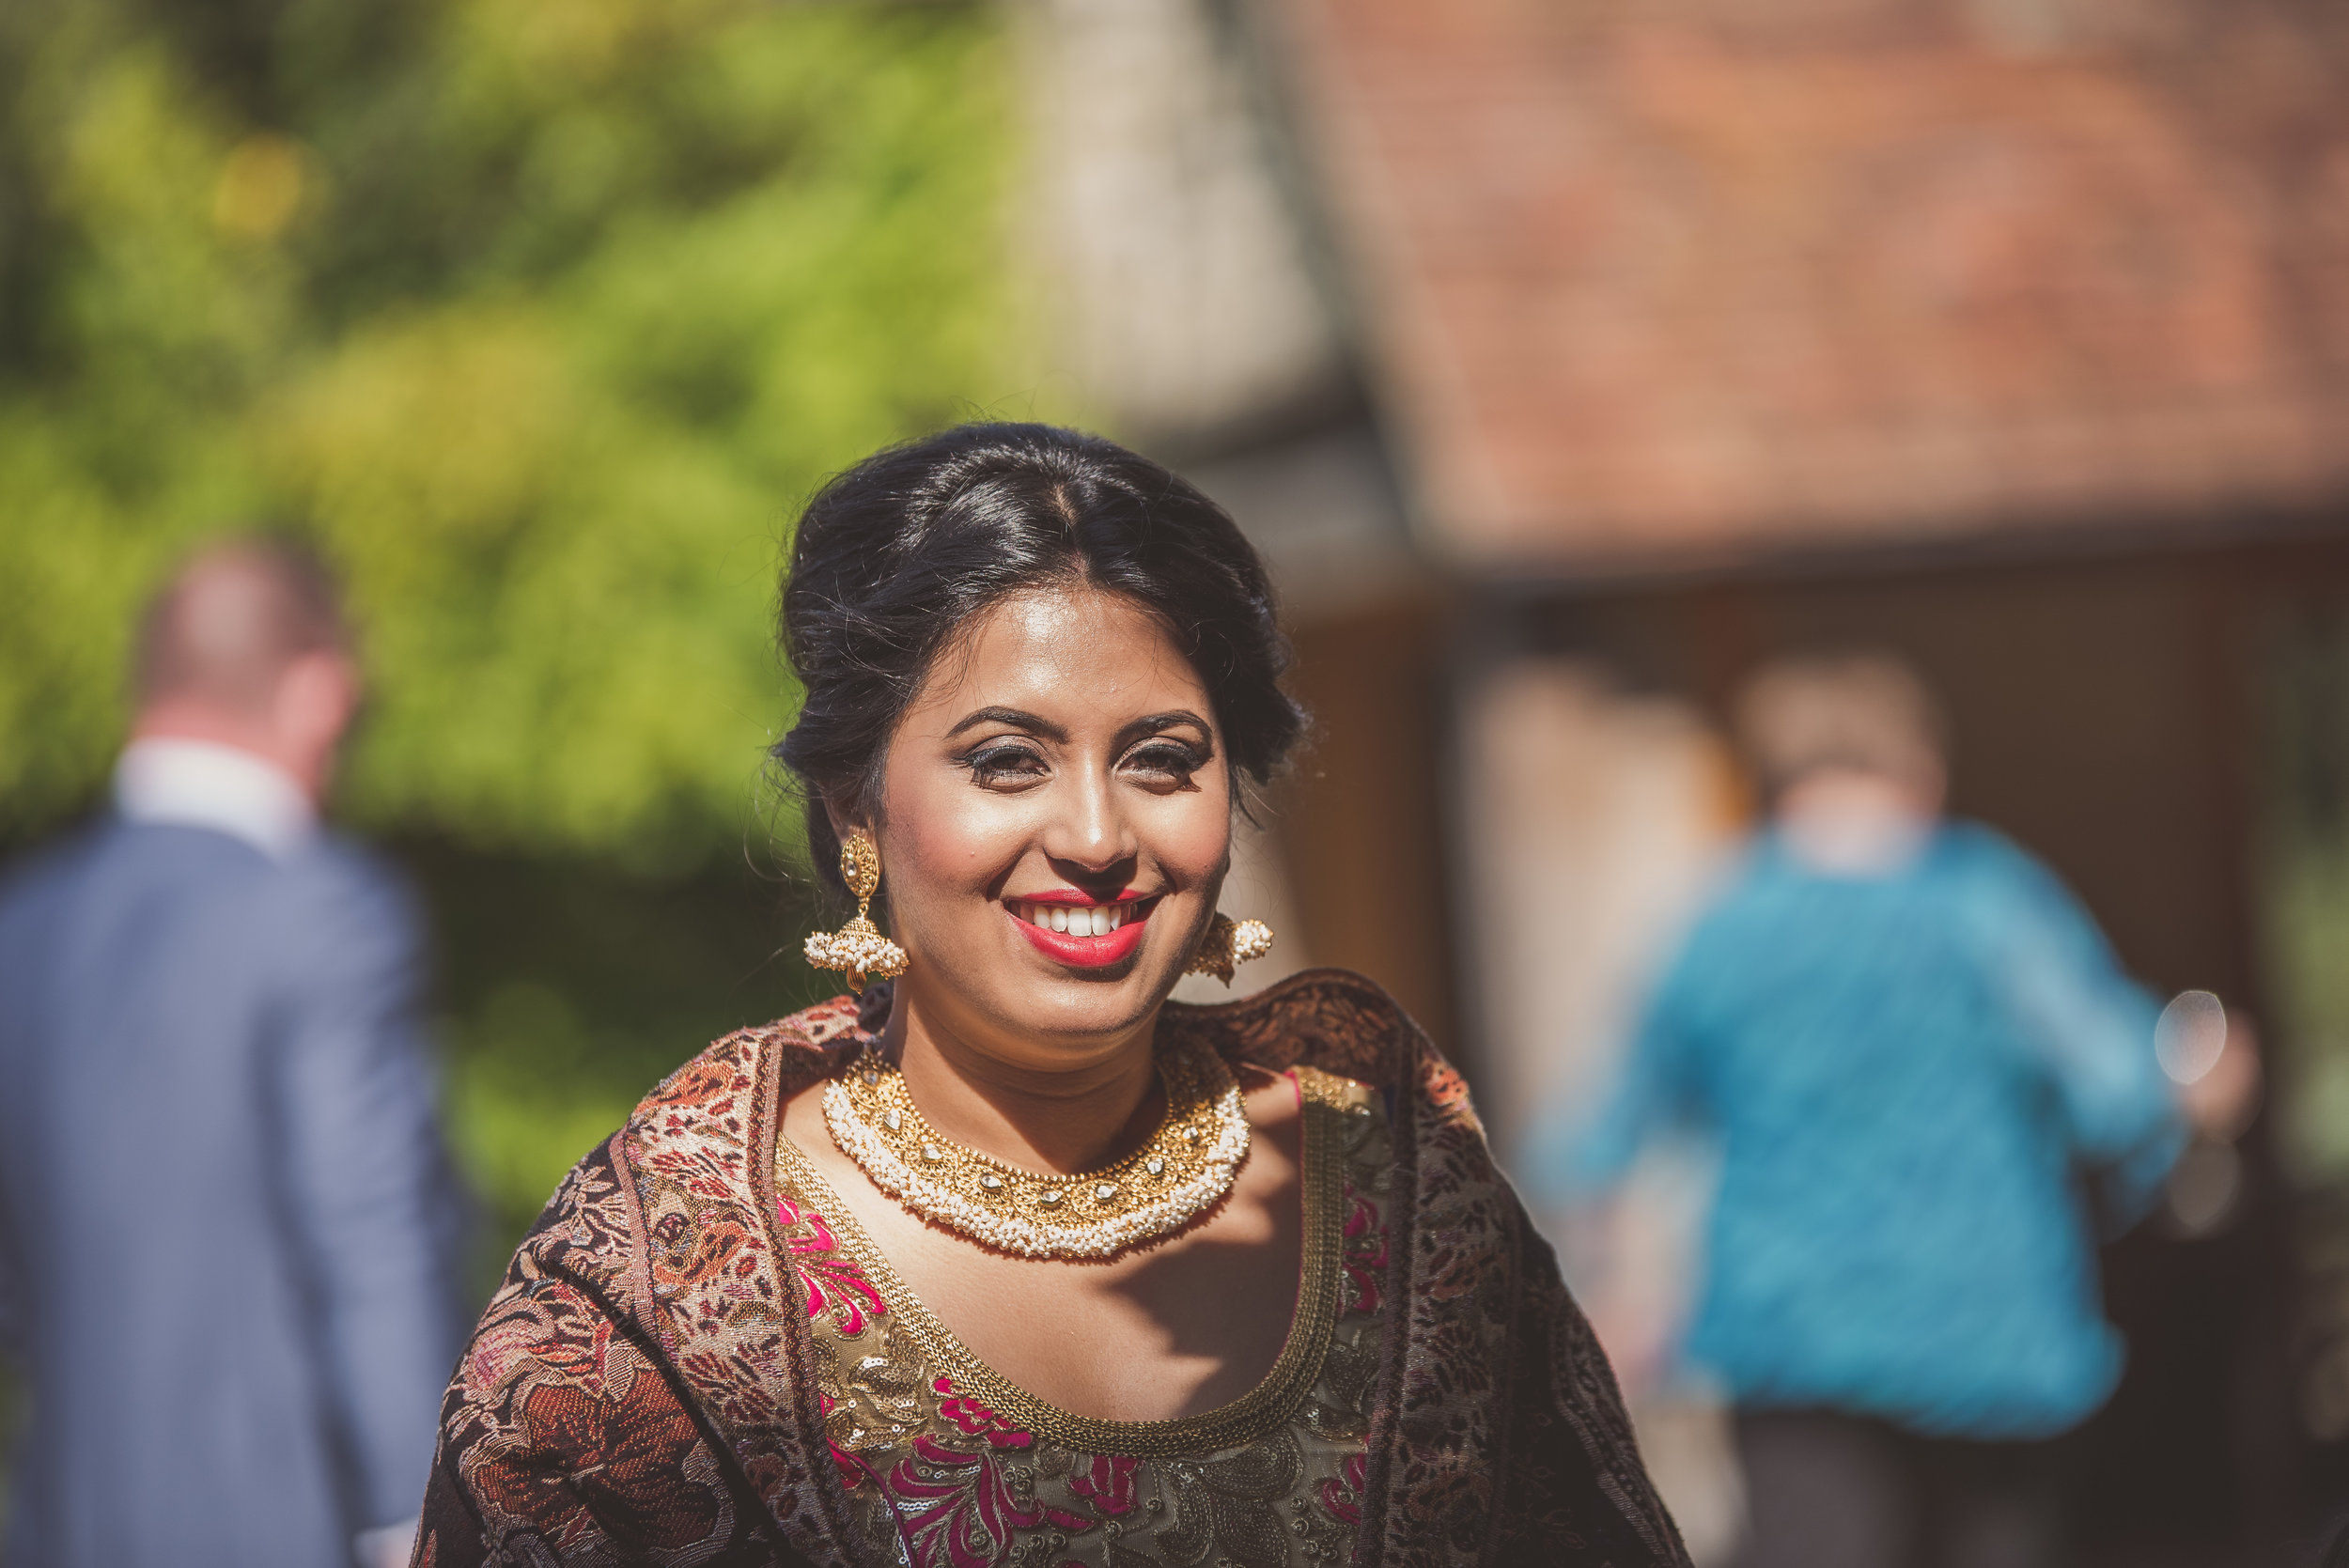 Wedding guest at Hindu wedding at Tythe Barn